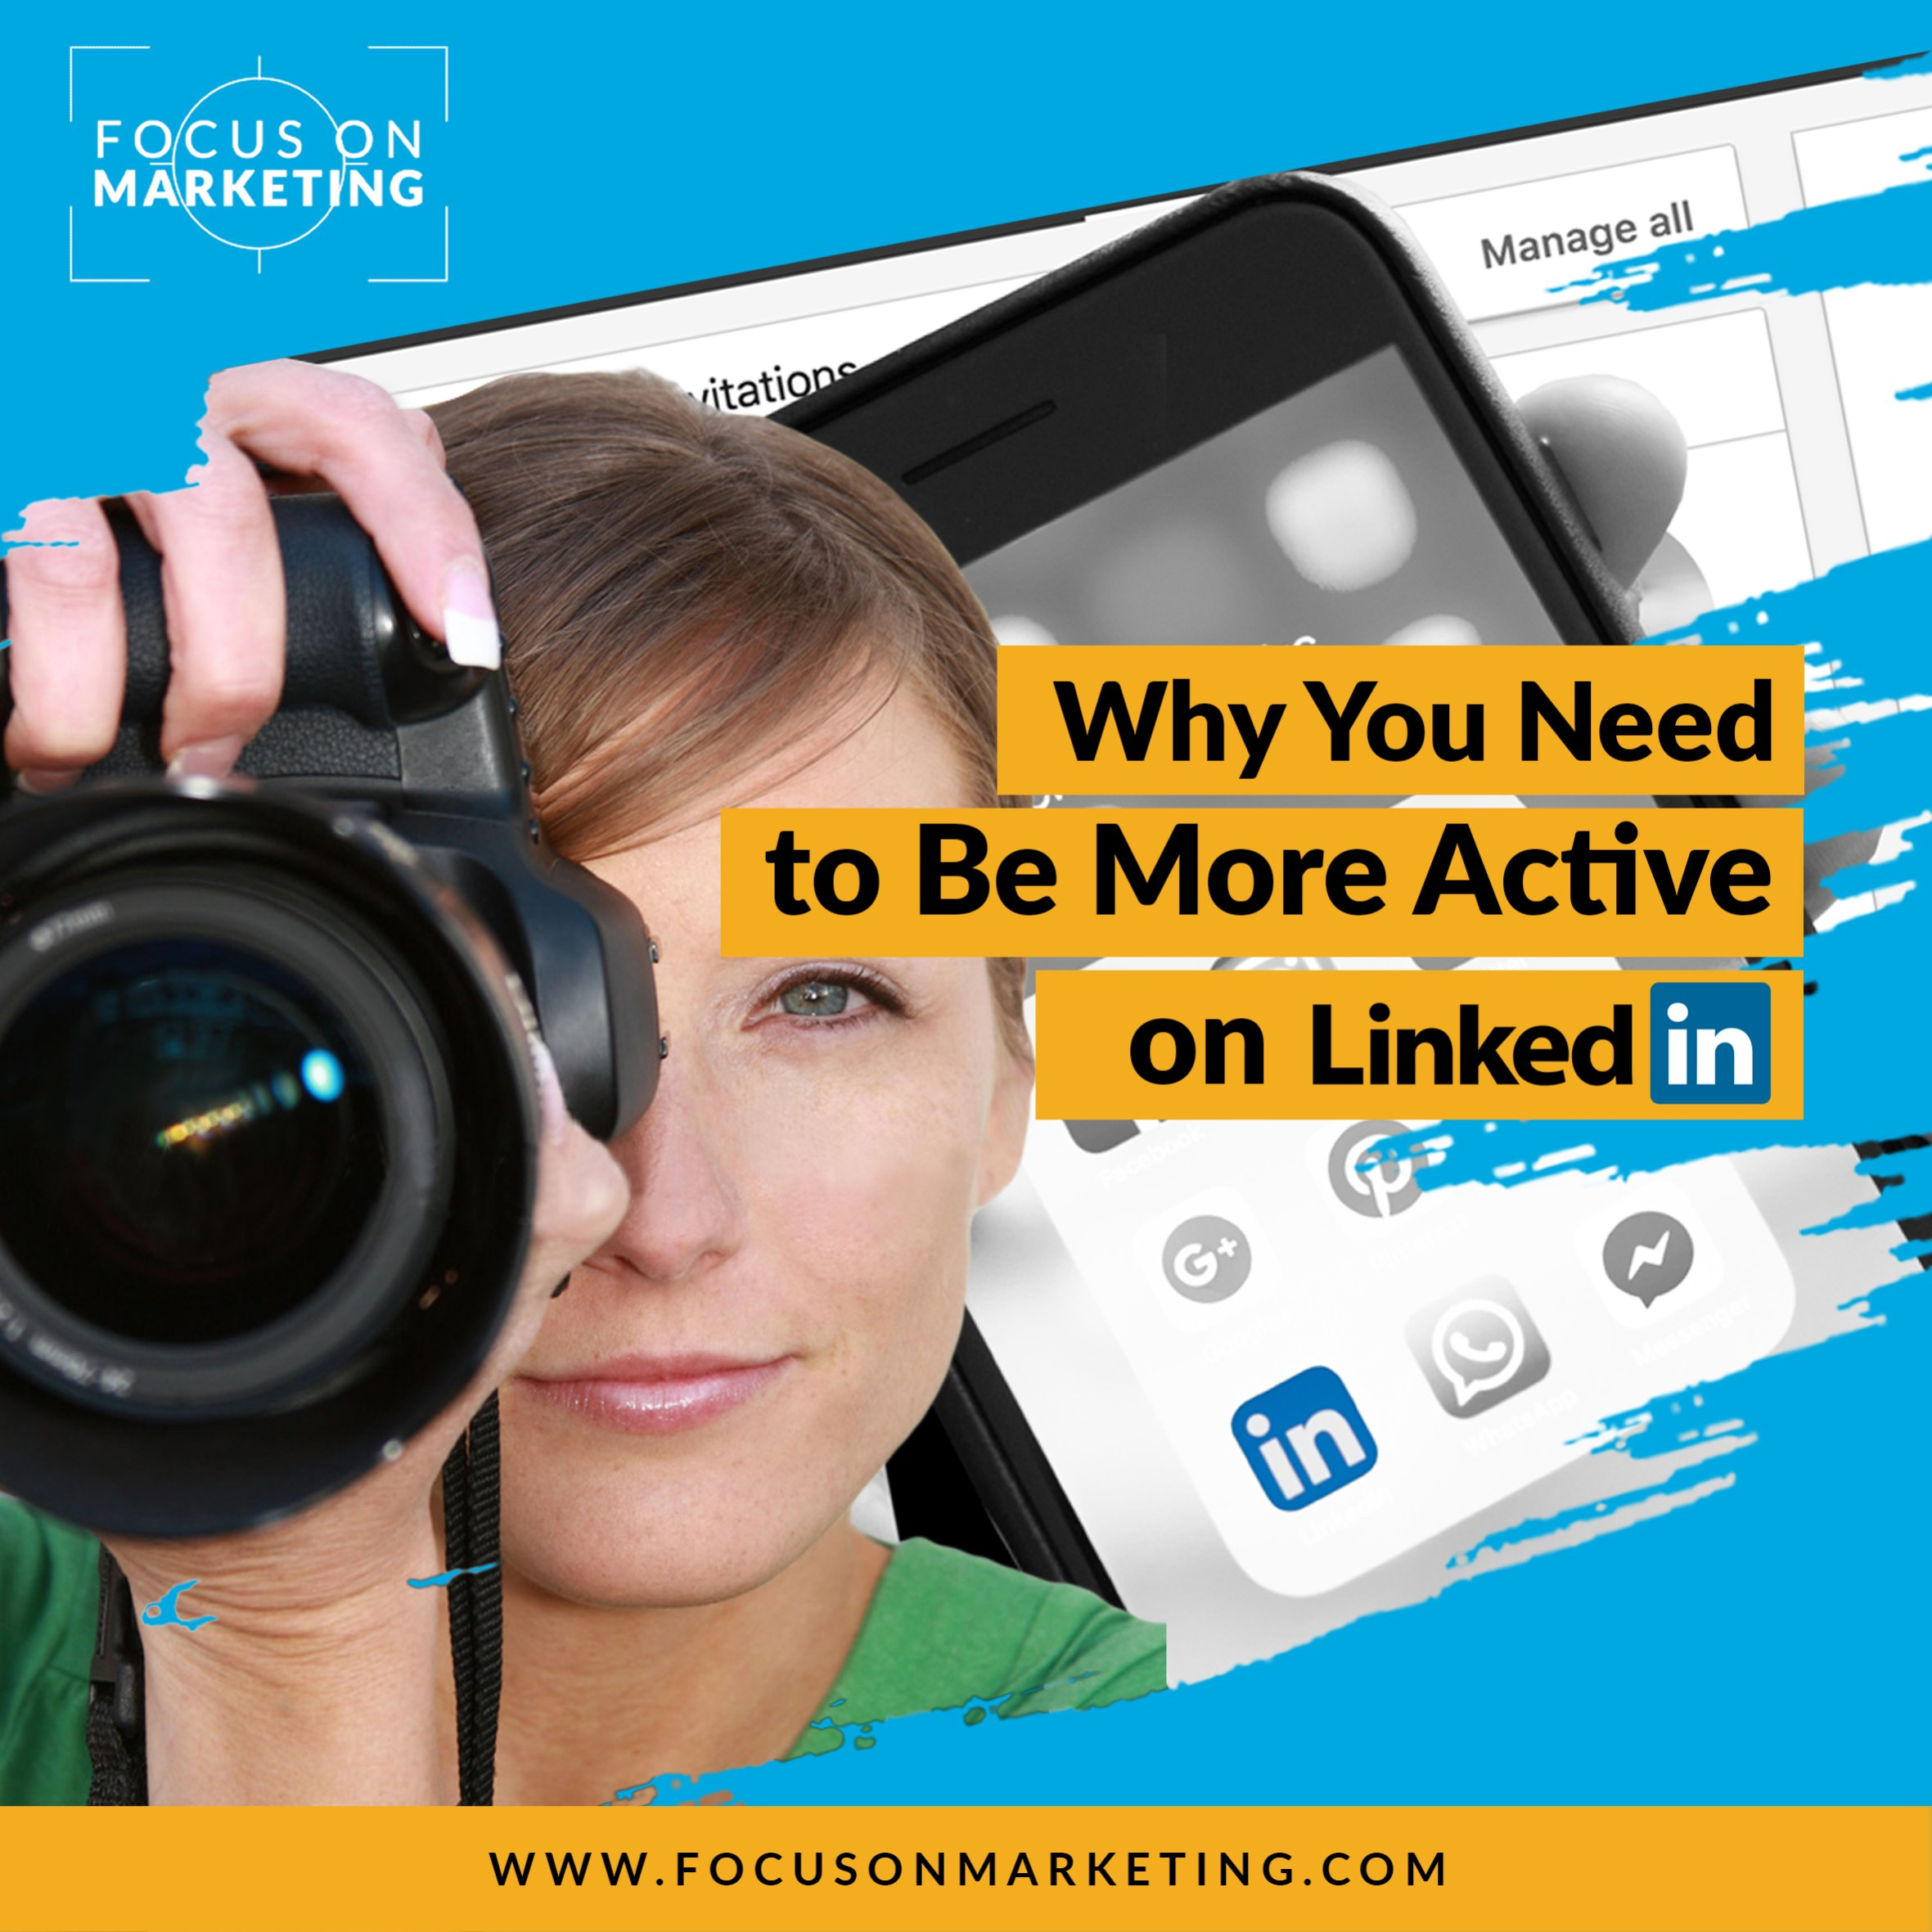 Why You Need to Be More Active on LinkedIn.jpg